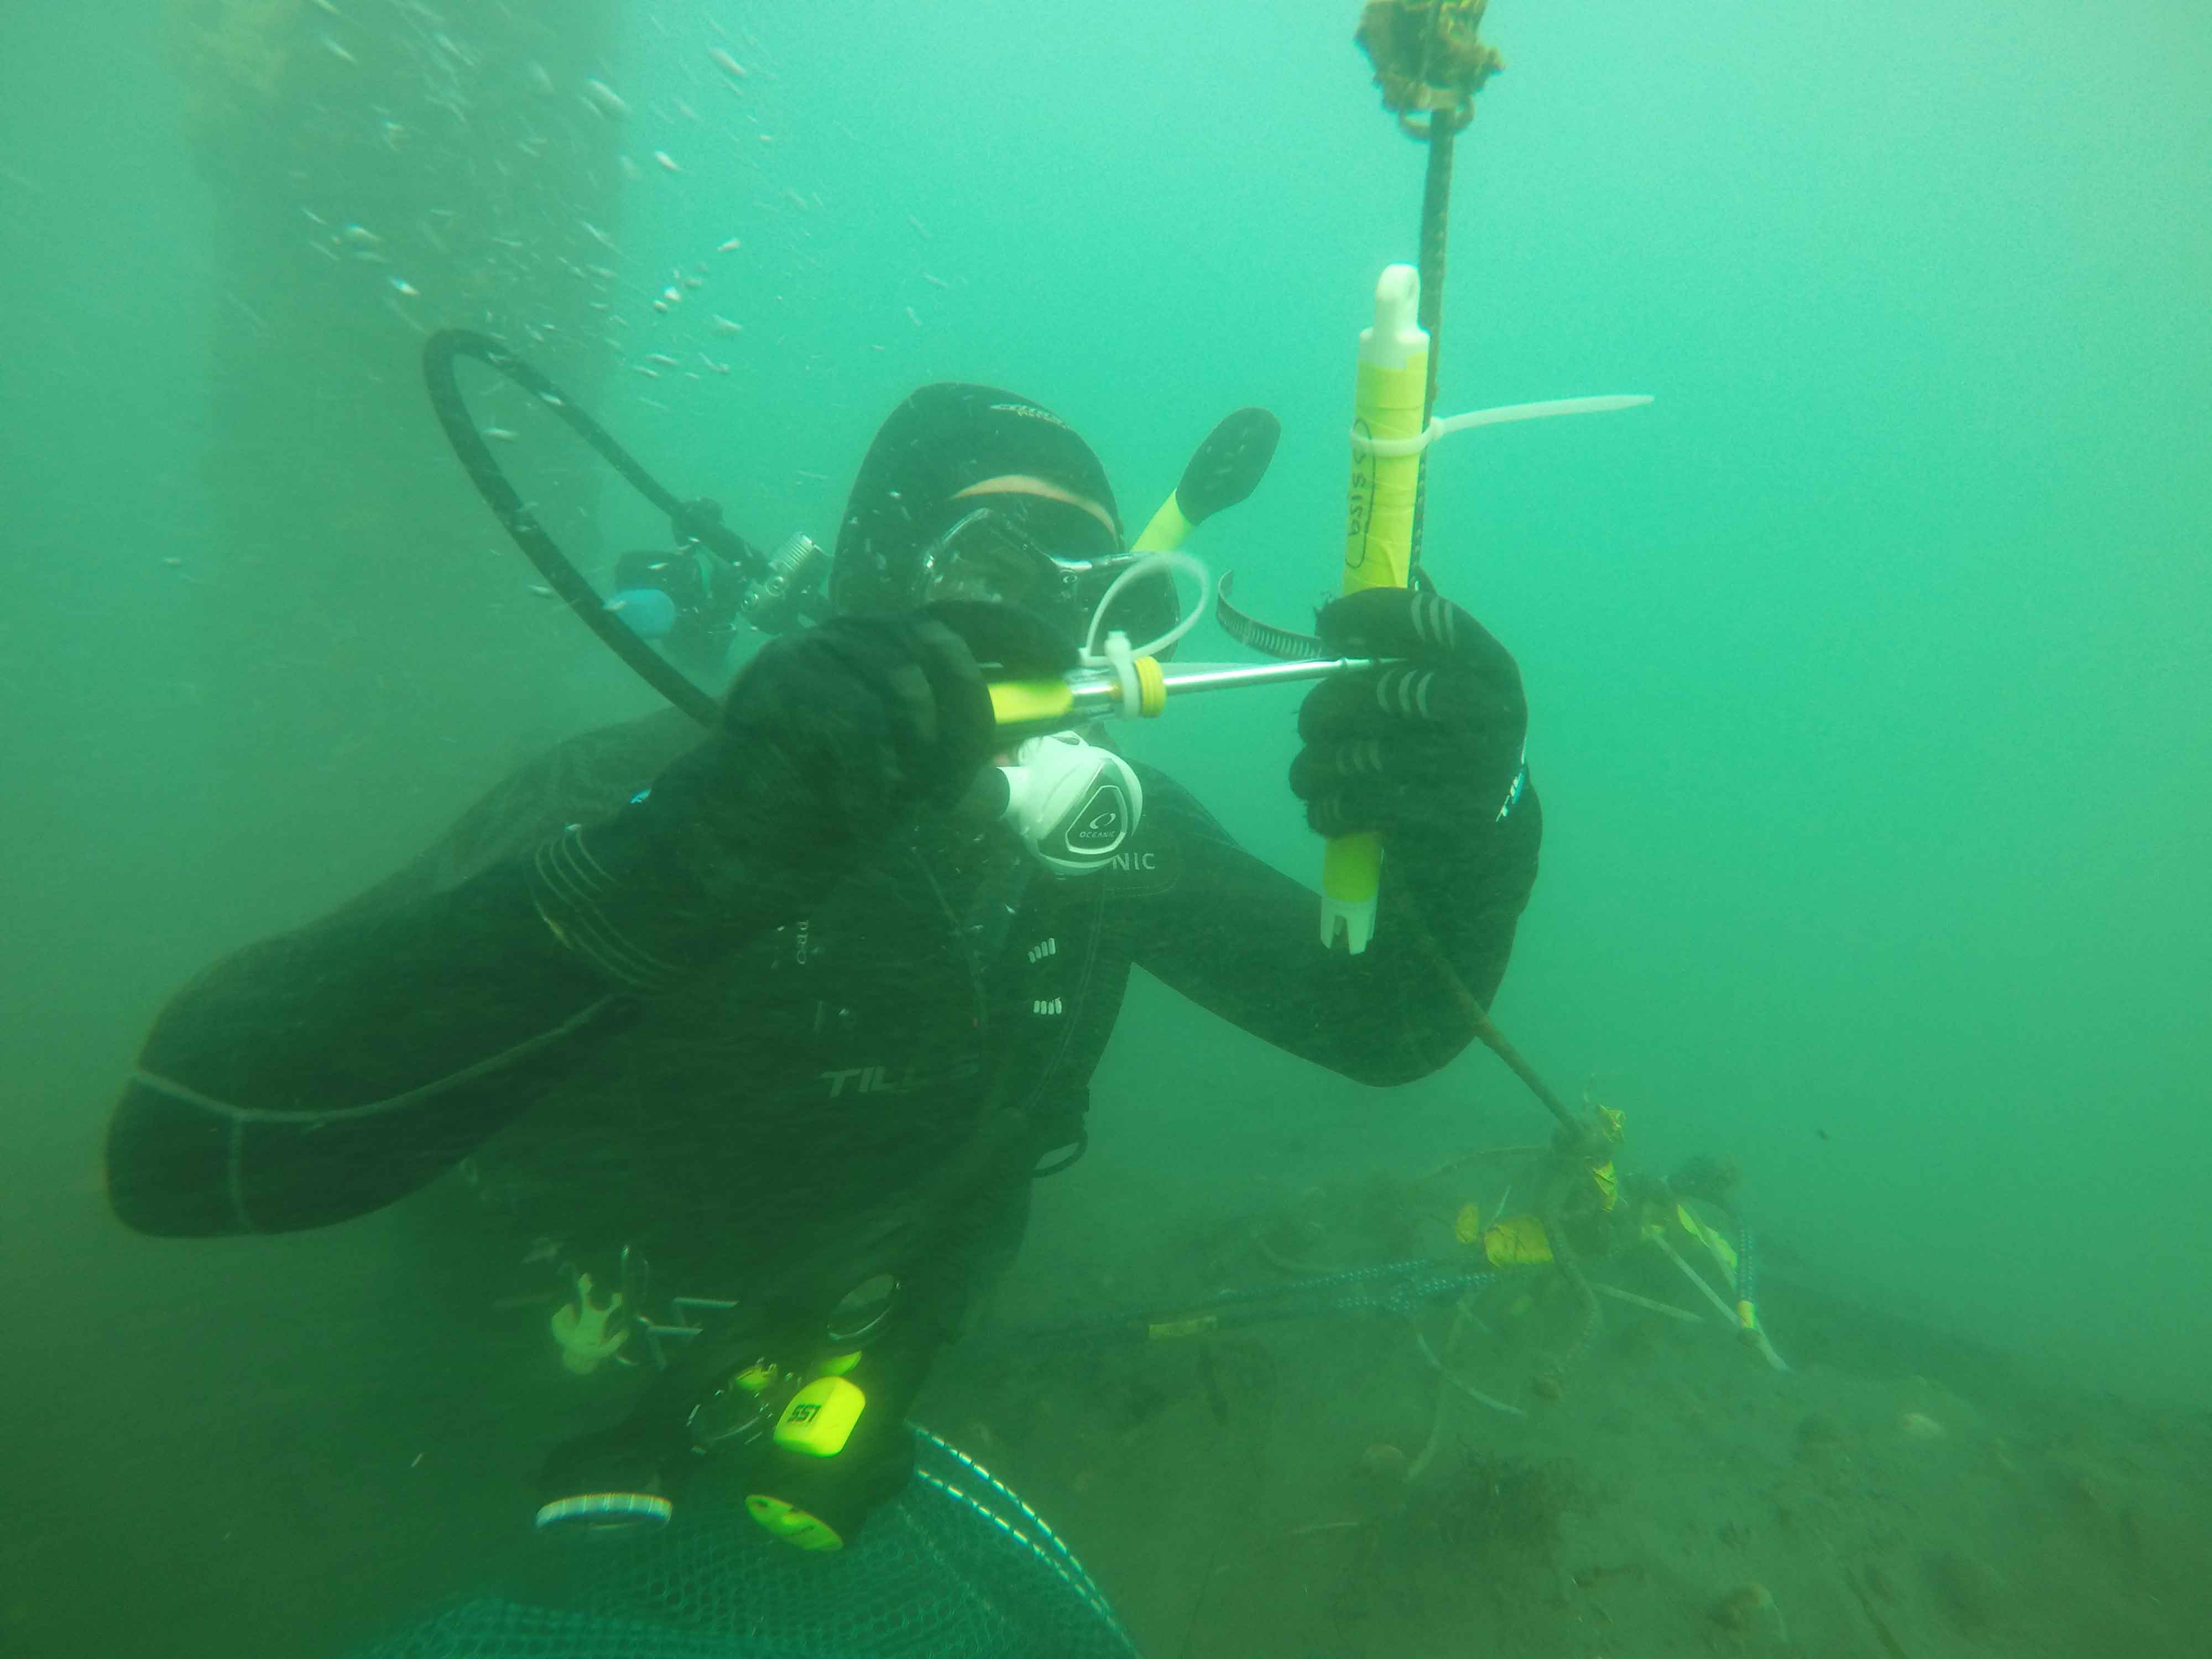 Cal Poly mechanical engineering student Edwin Rainville, adjusts a thermistor — an instrument that measures temperature — underwater in Morro Bay.